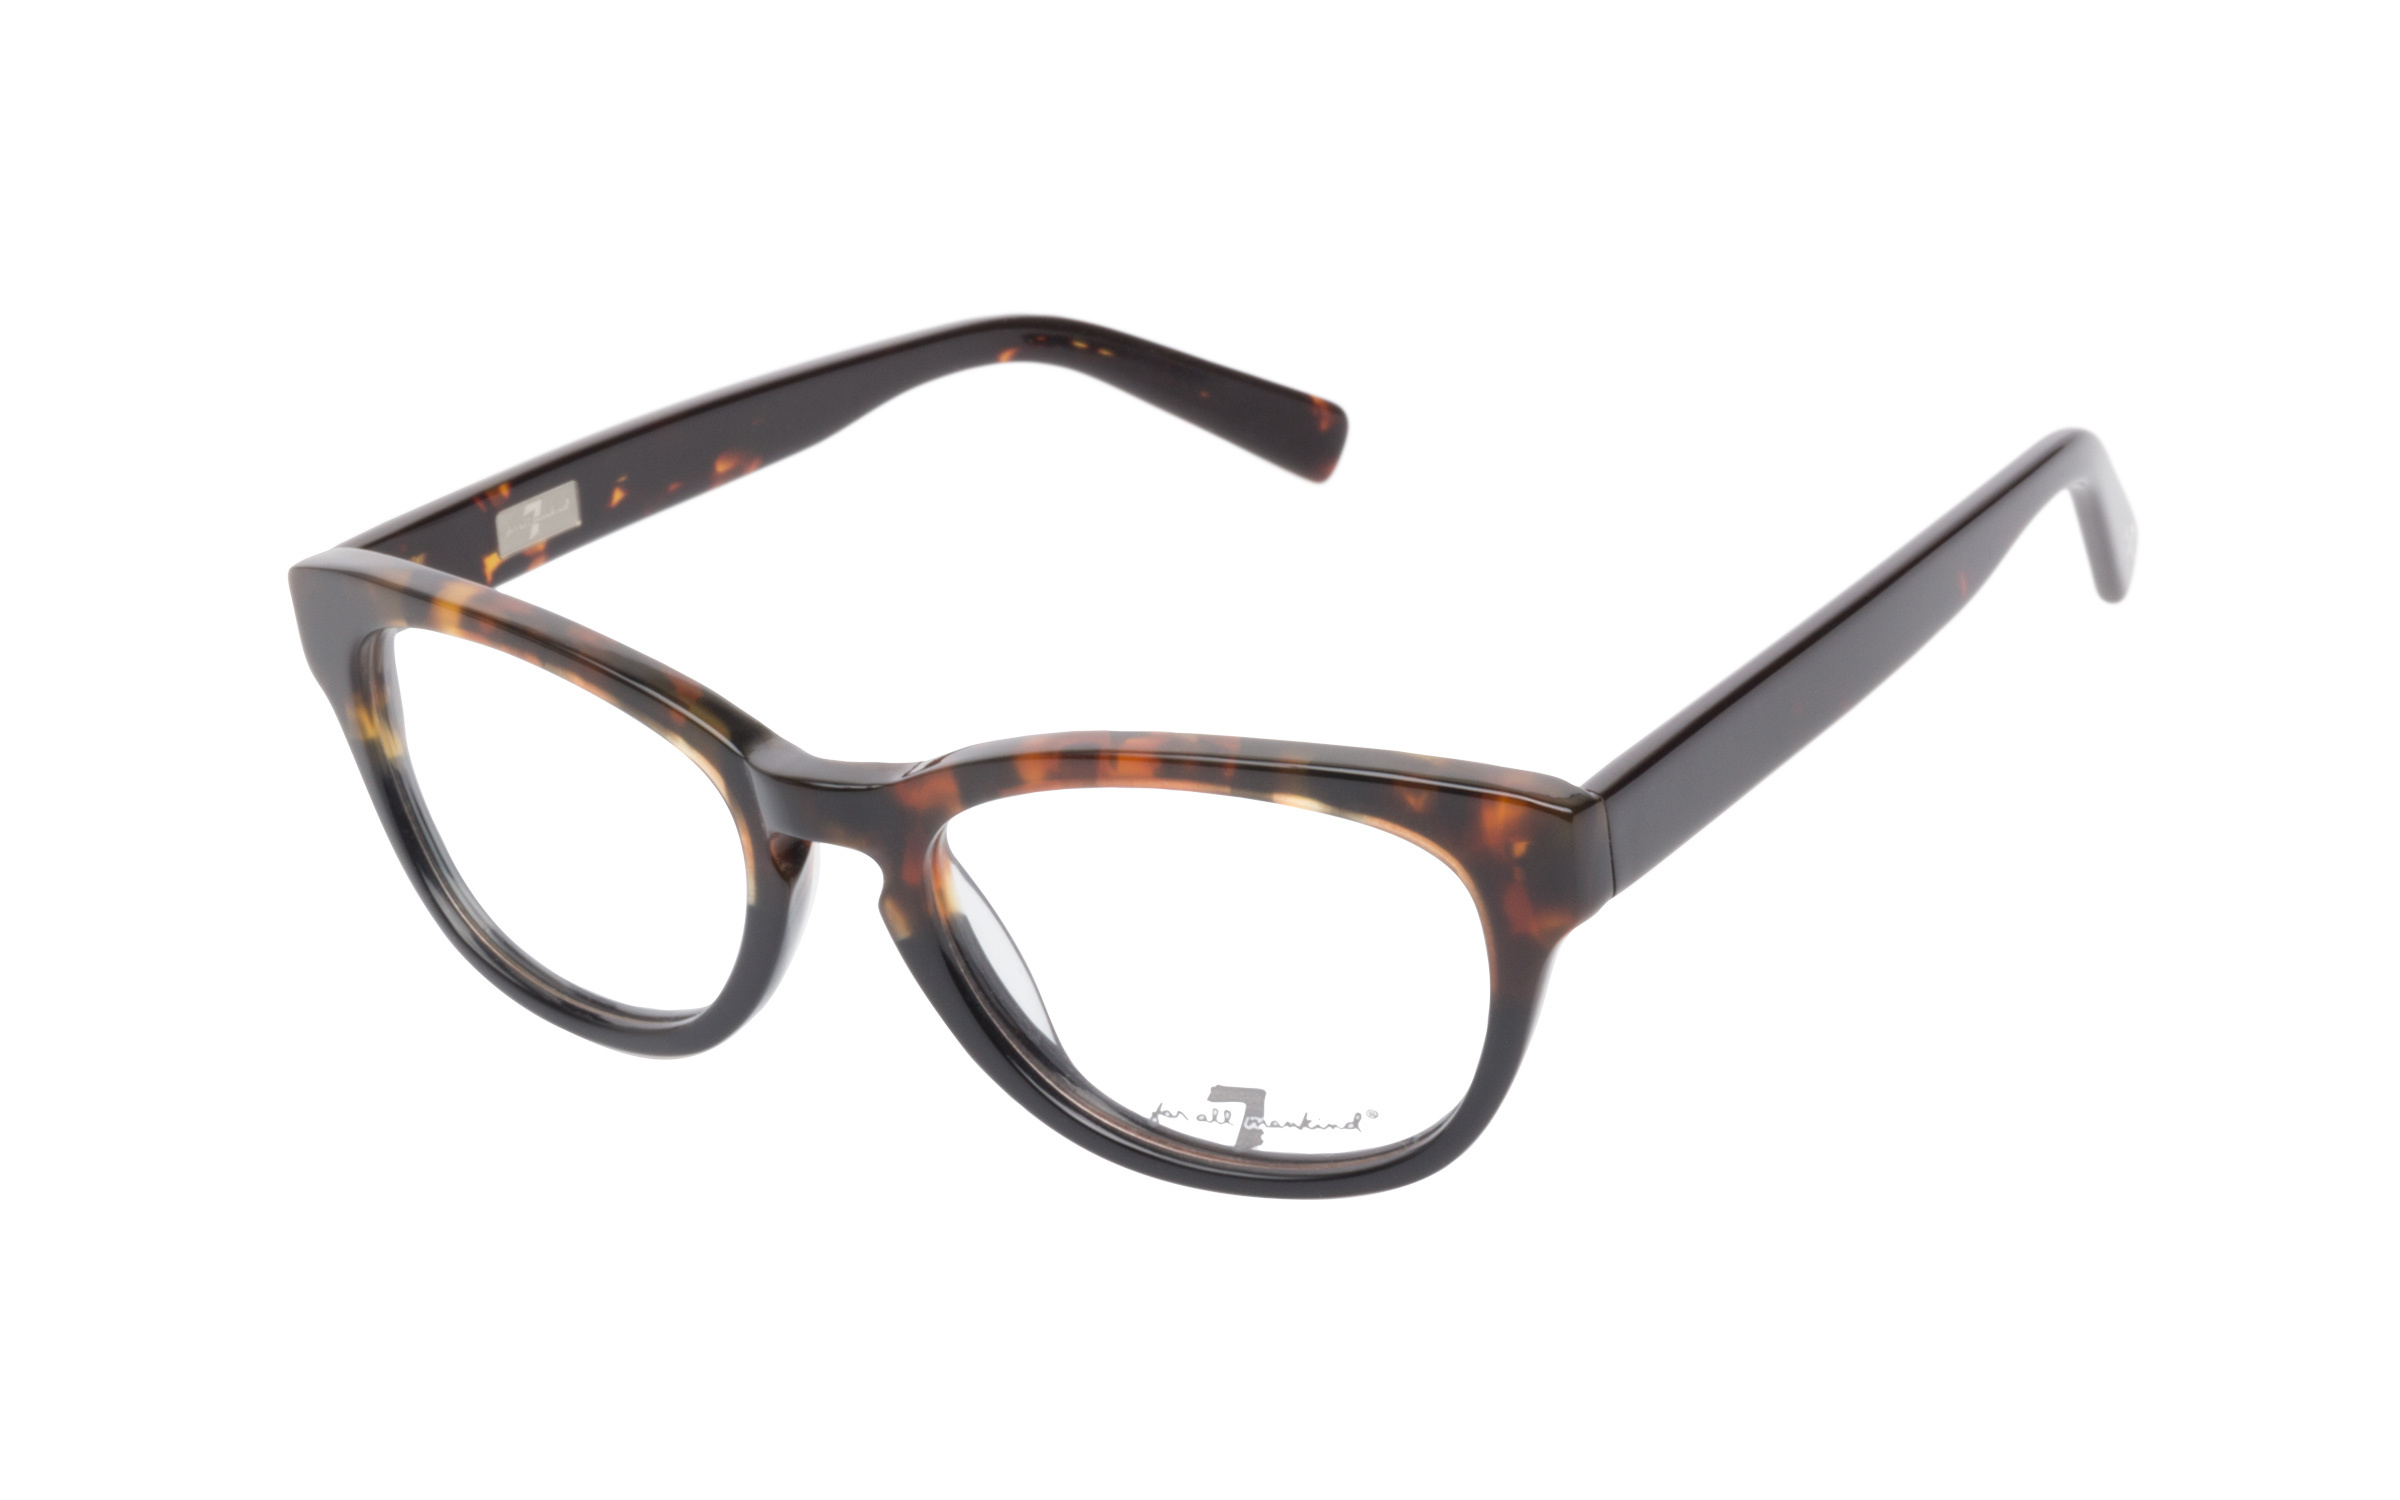 7 for All Mankind Women's Glasses Cat-Eye Brown/Tortoise Online Clearly